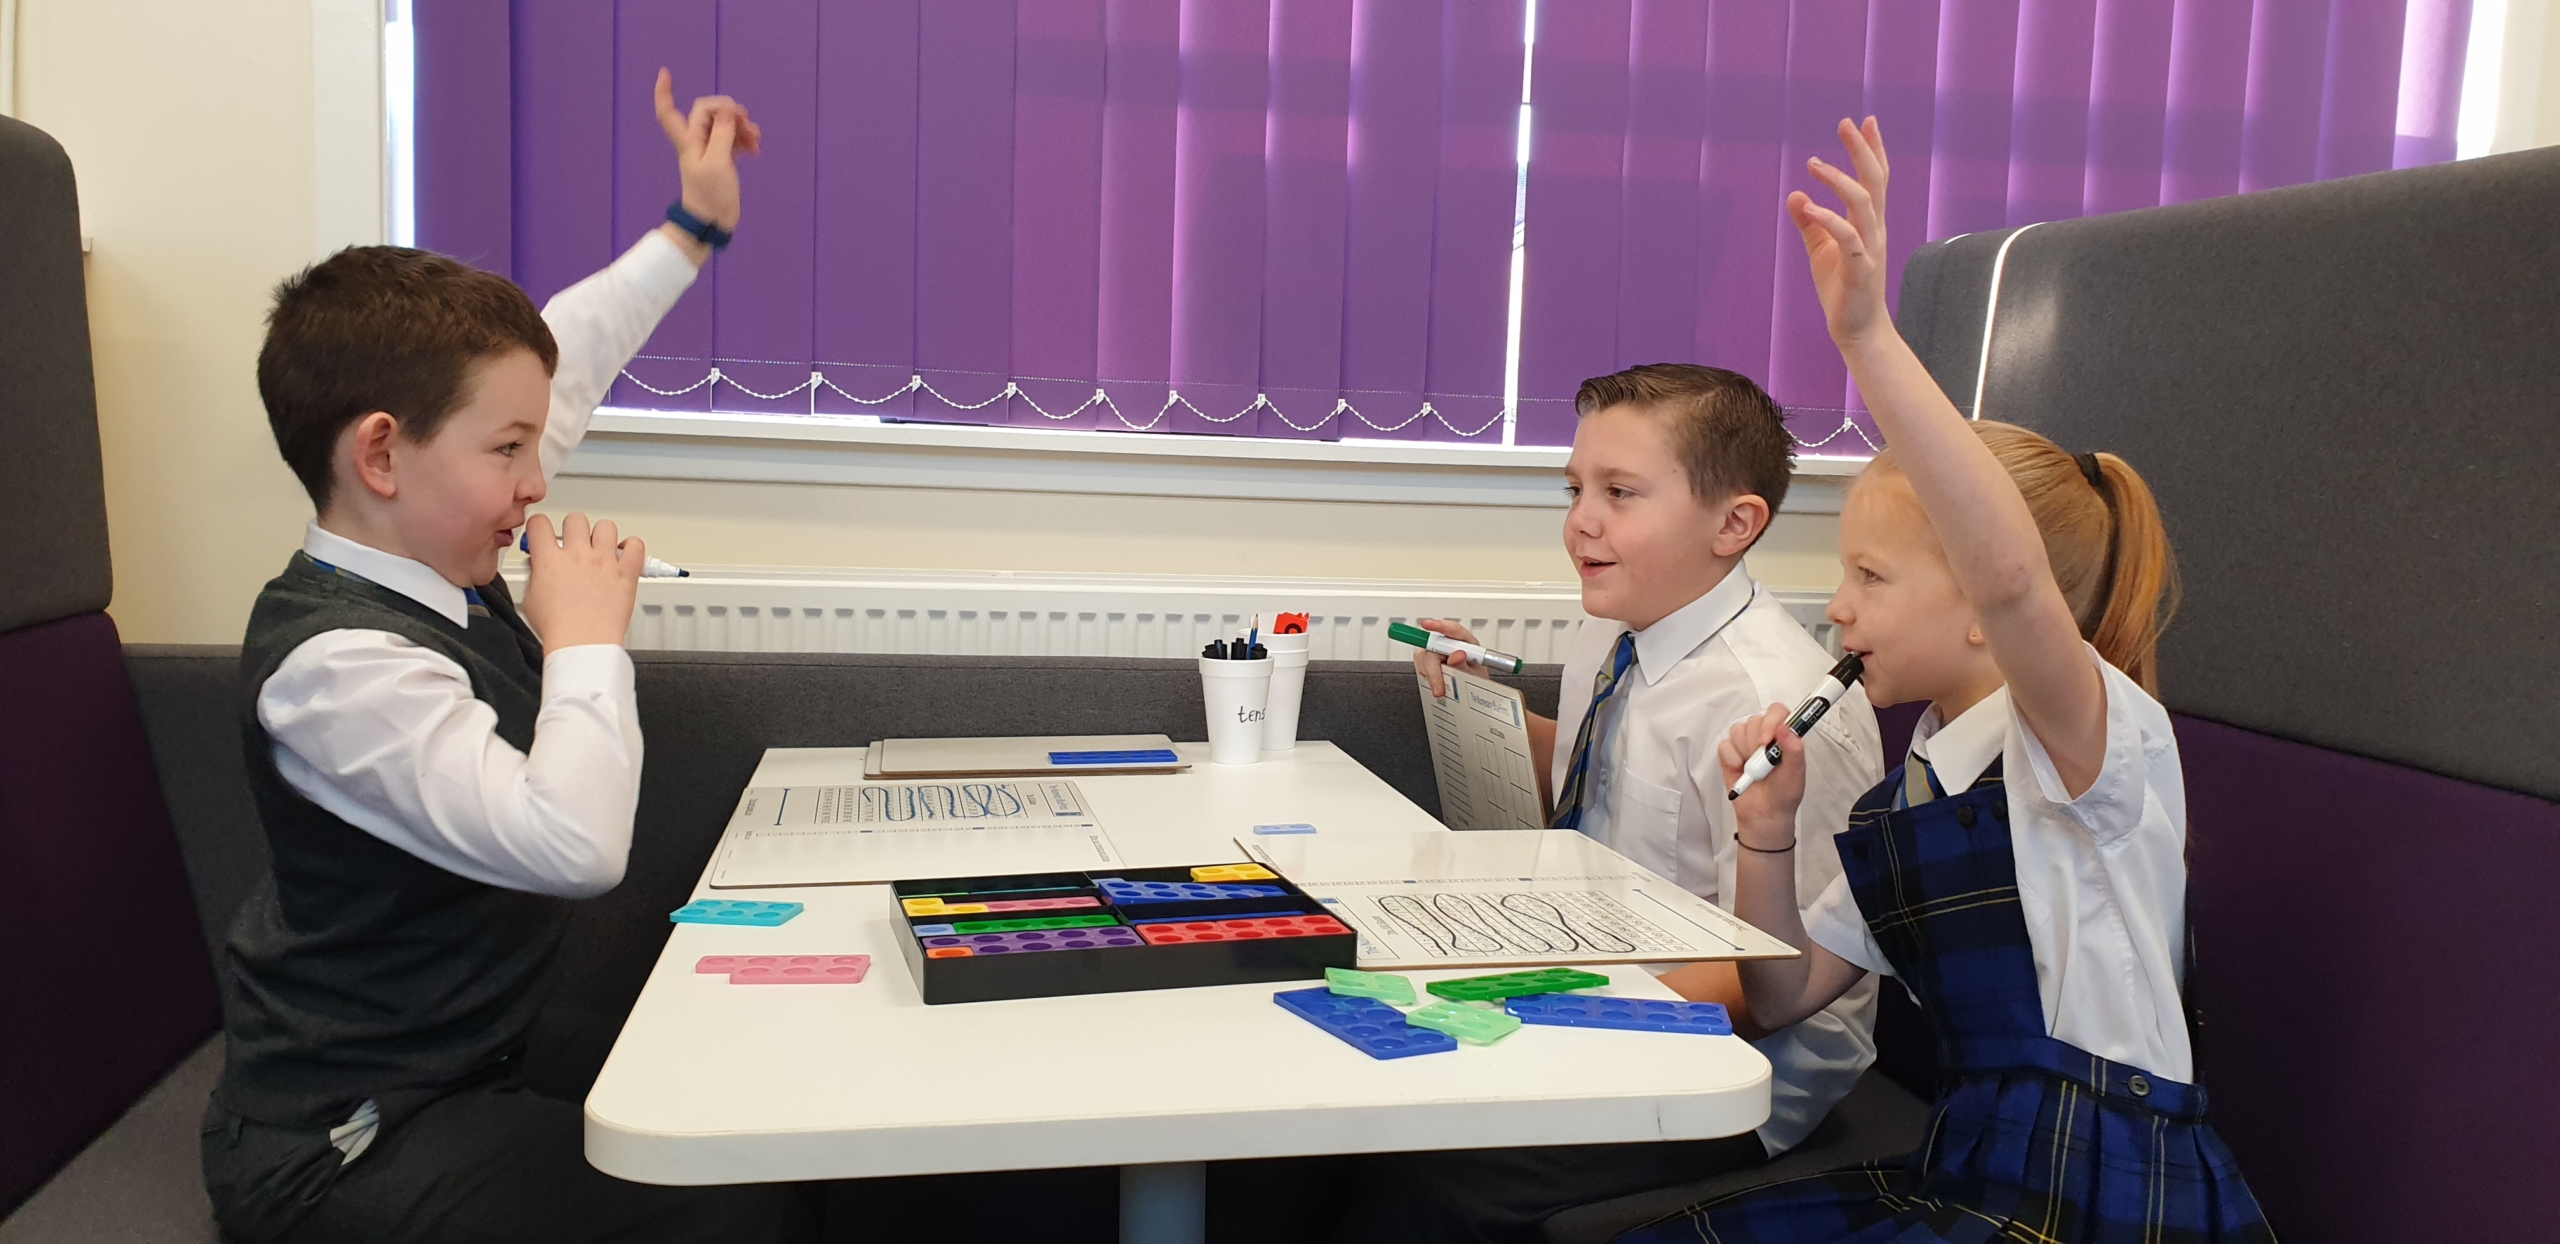 Primary - Heriot - learning maths - 17 Jan 2020 - JCON (11)